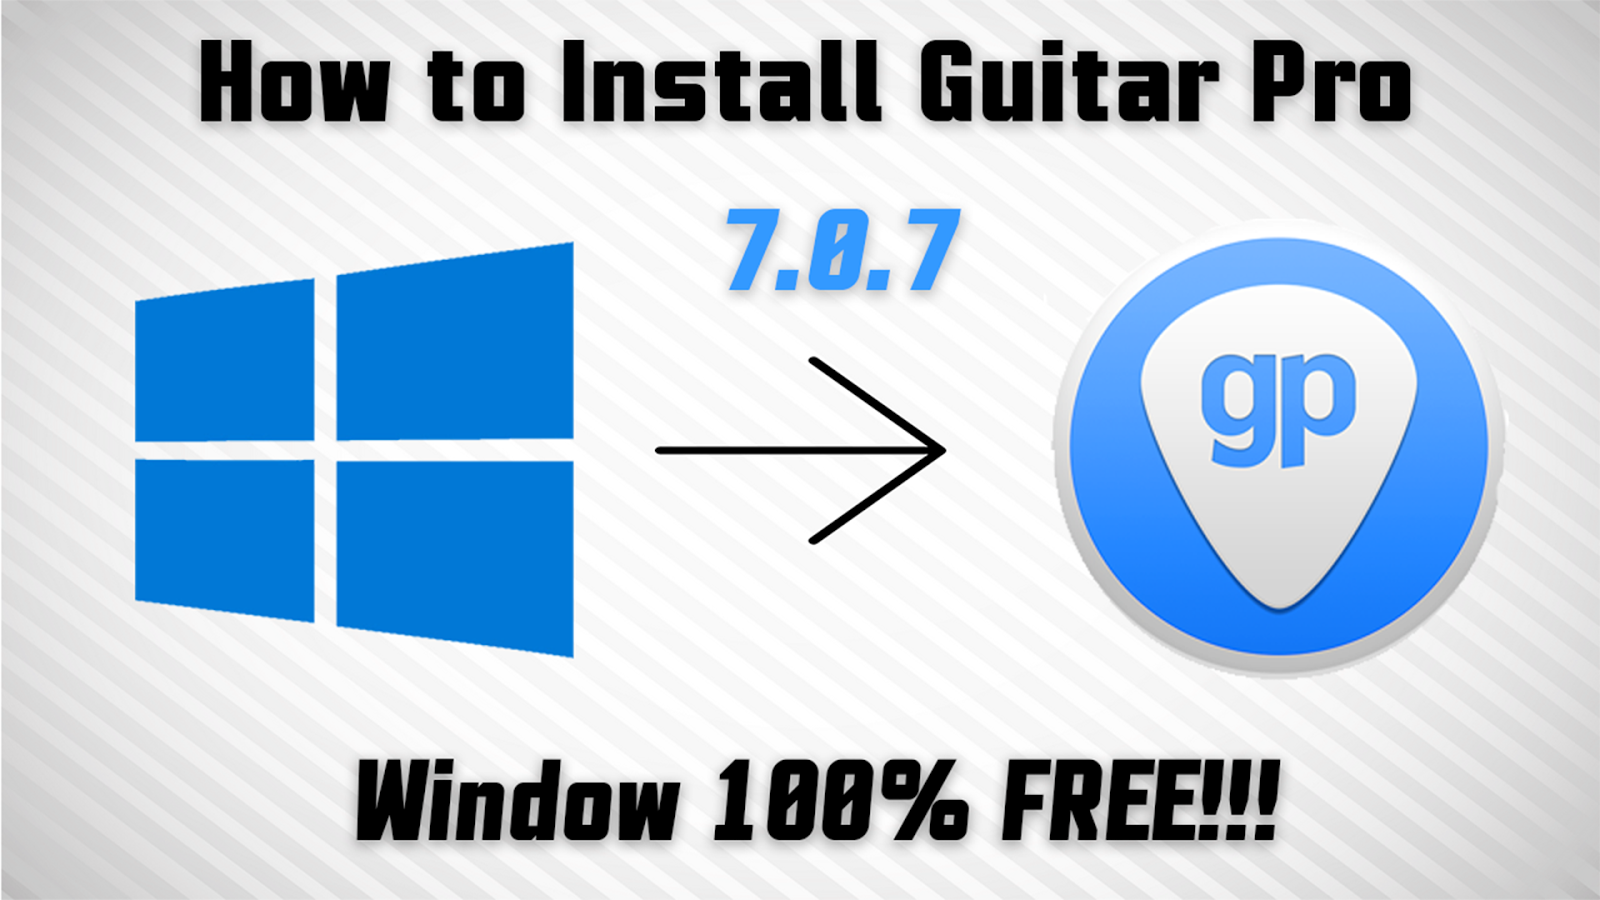 How to Install Guitar Pro 7 0 7 For Windows   VIGLOGU'S